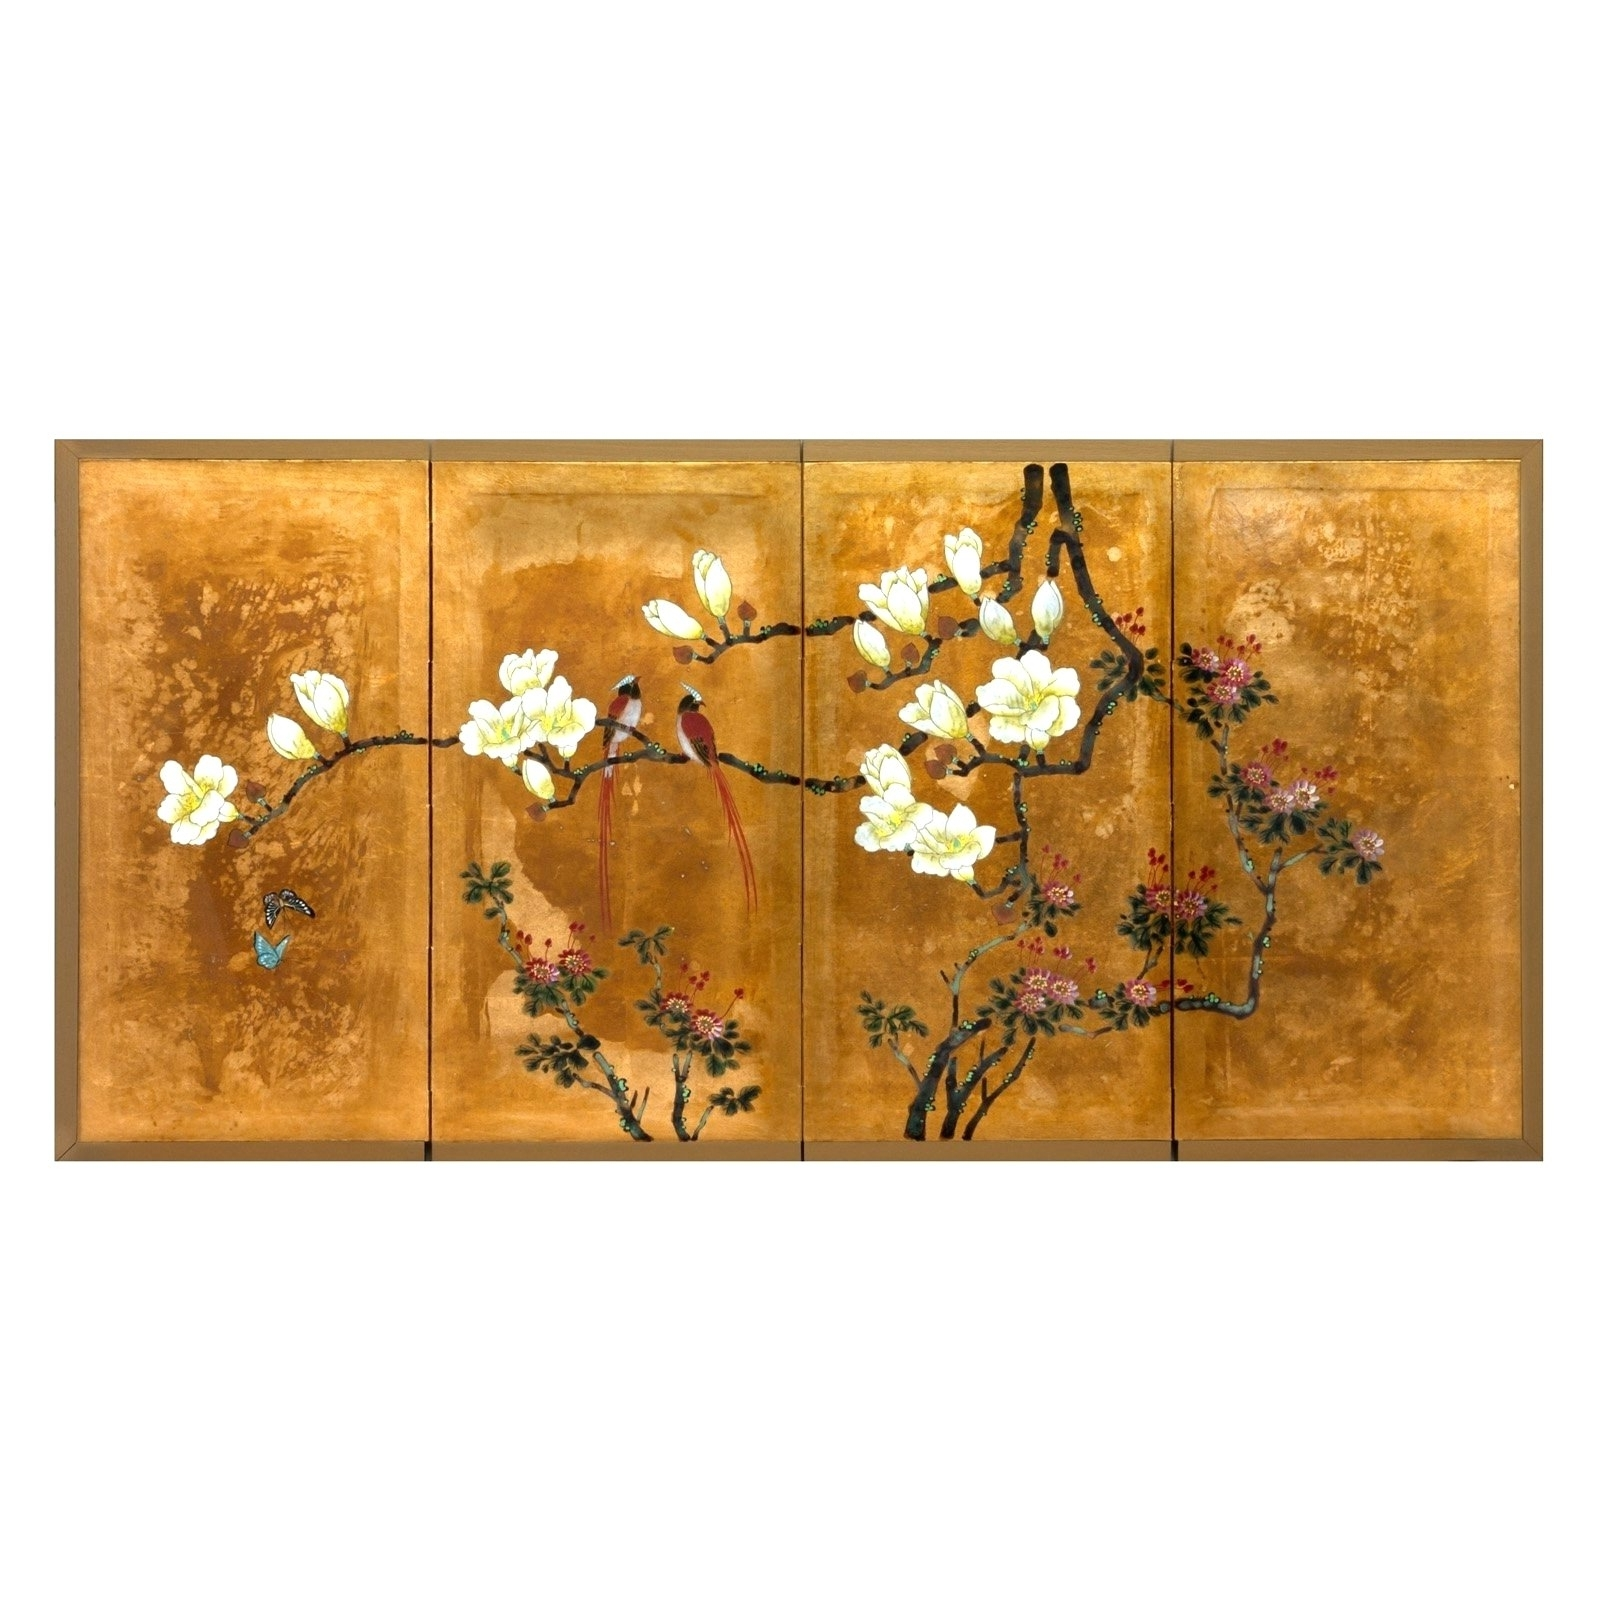 Wonderful Canvas Wall Beautiful Wall Art Gold Coast – Wall Art And Pertaining To Most Recently Released Gold Coast Canvas Wall Art (View 11 of 15)